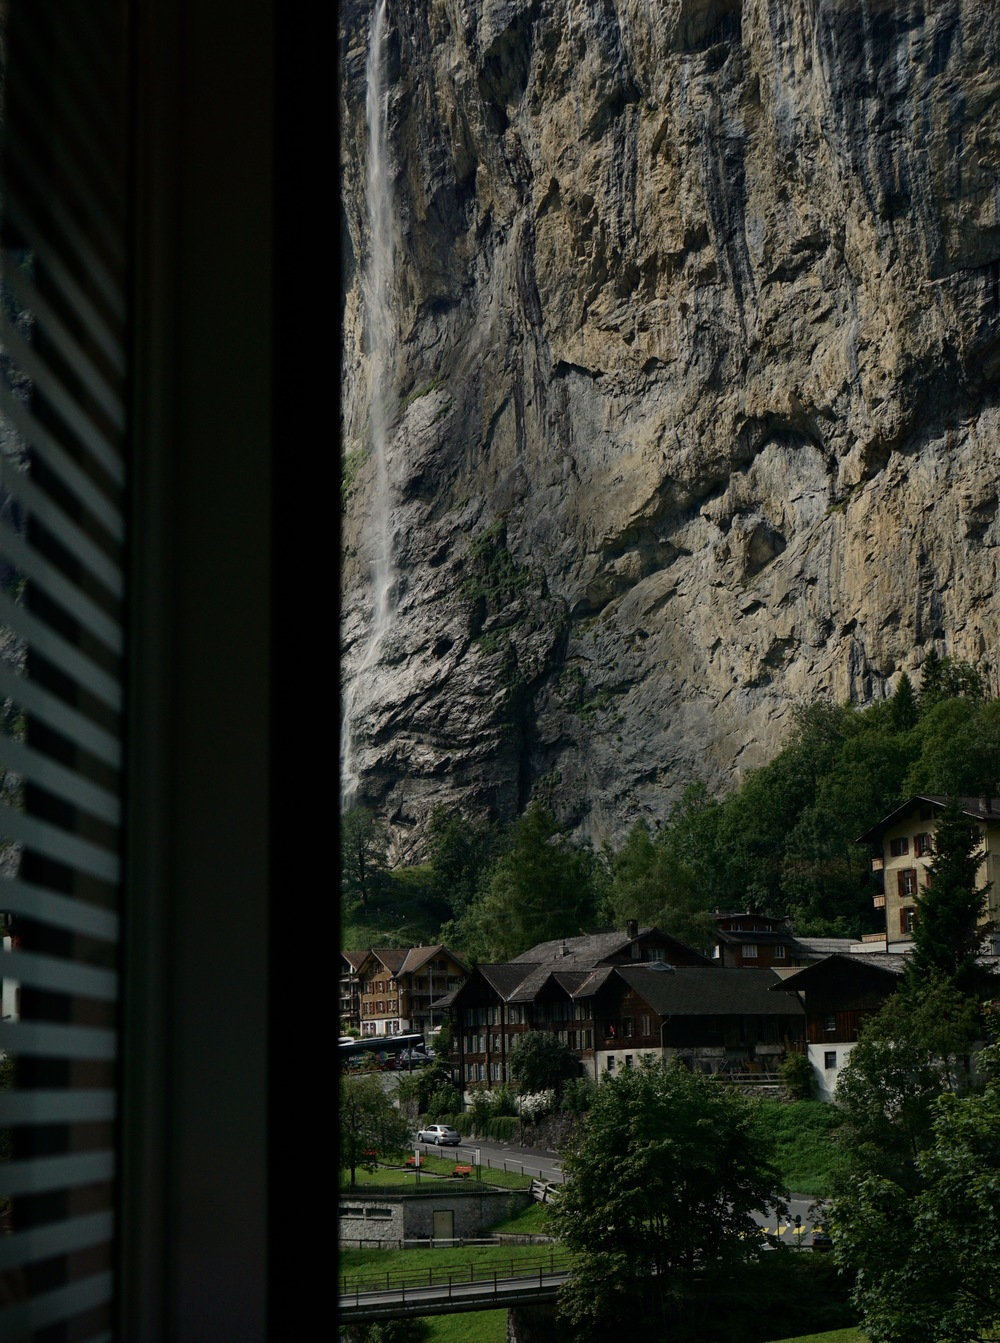 A glimpse of Lauterbrunnen on our way up the Mountains